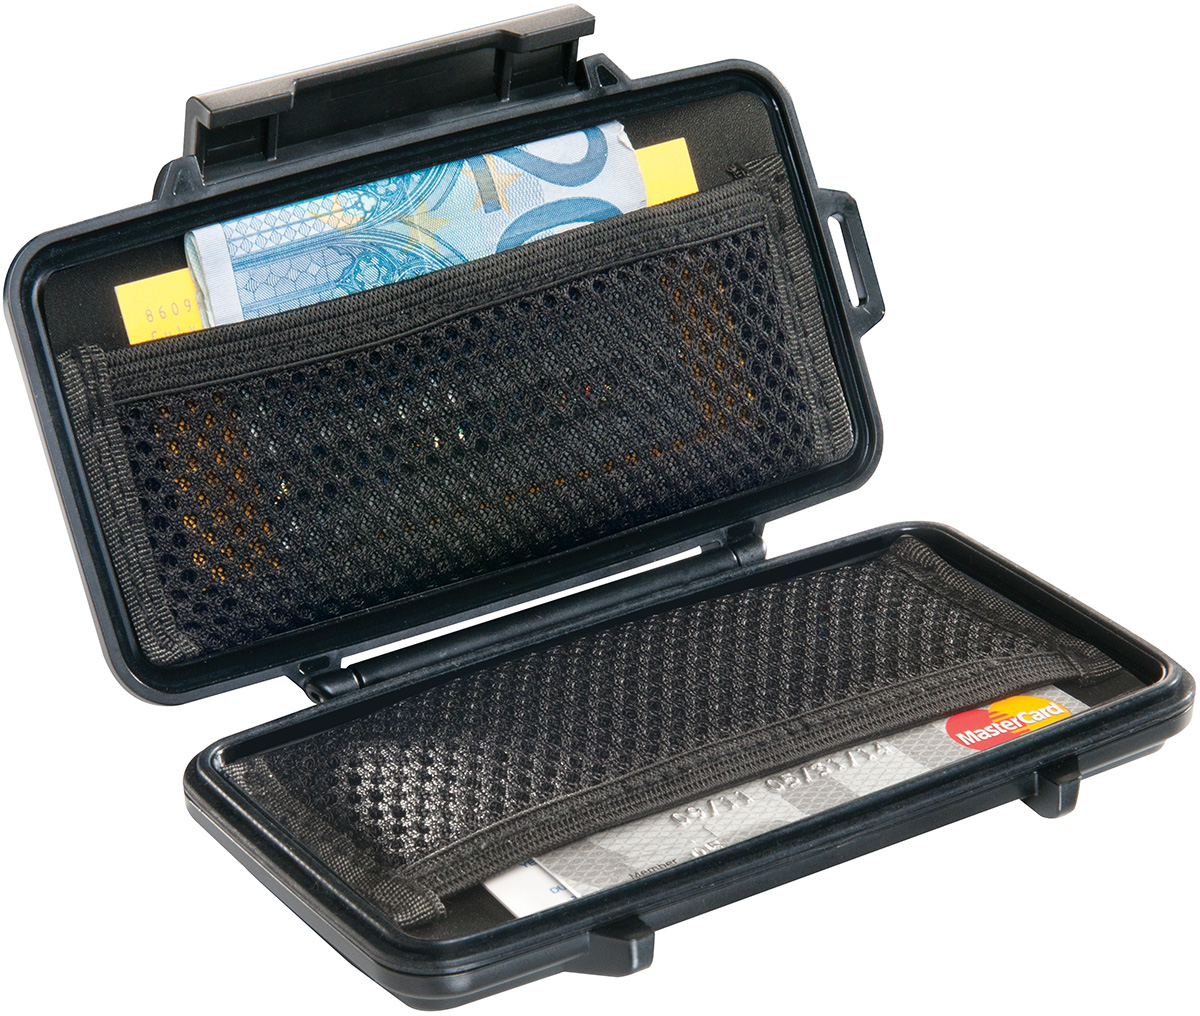 peli pelican products 0955 waterproof hard sport wallet case